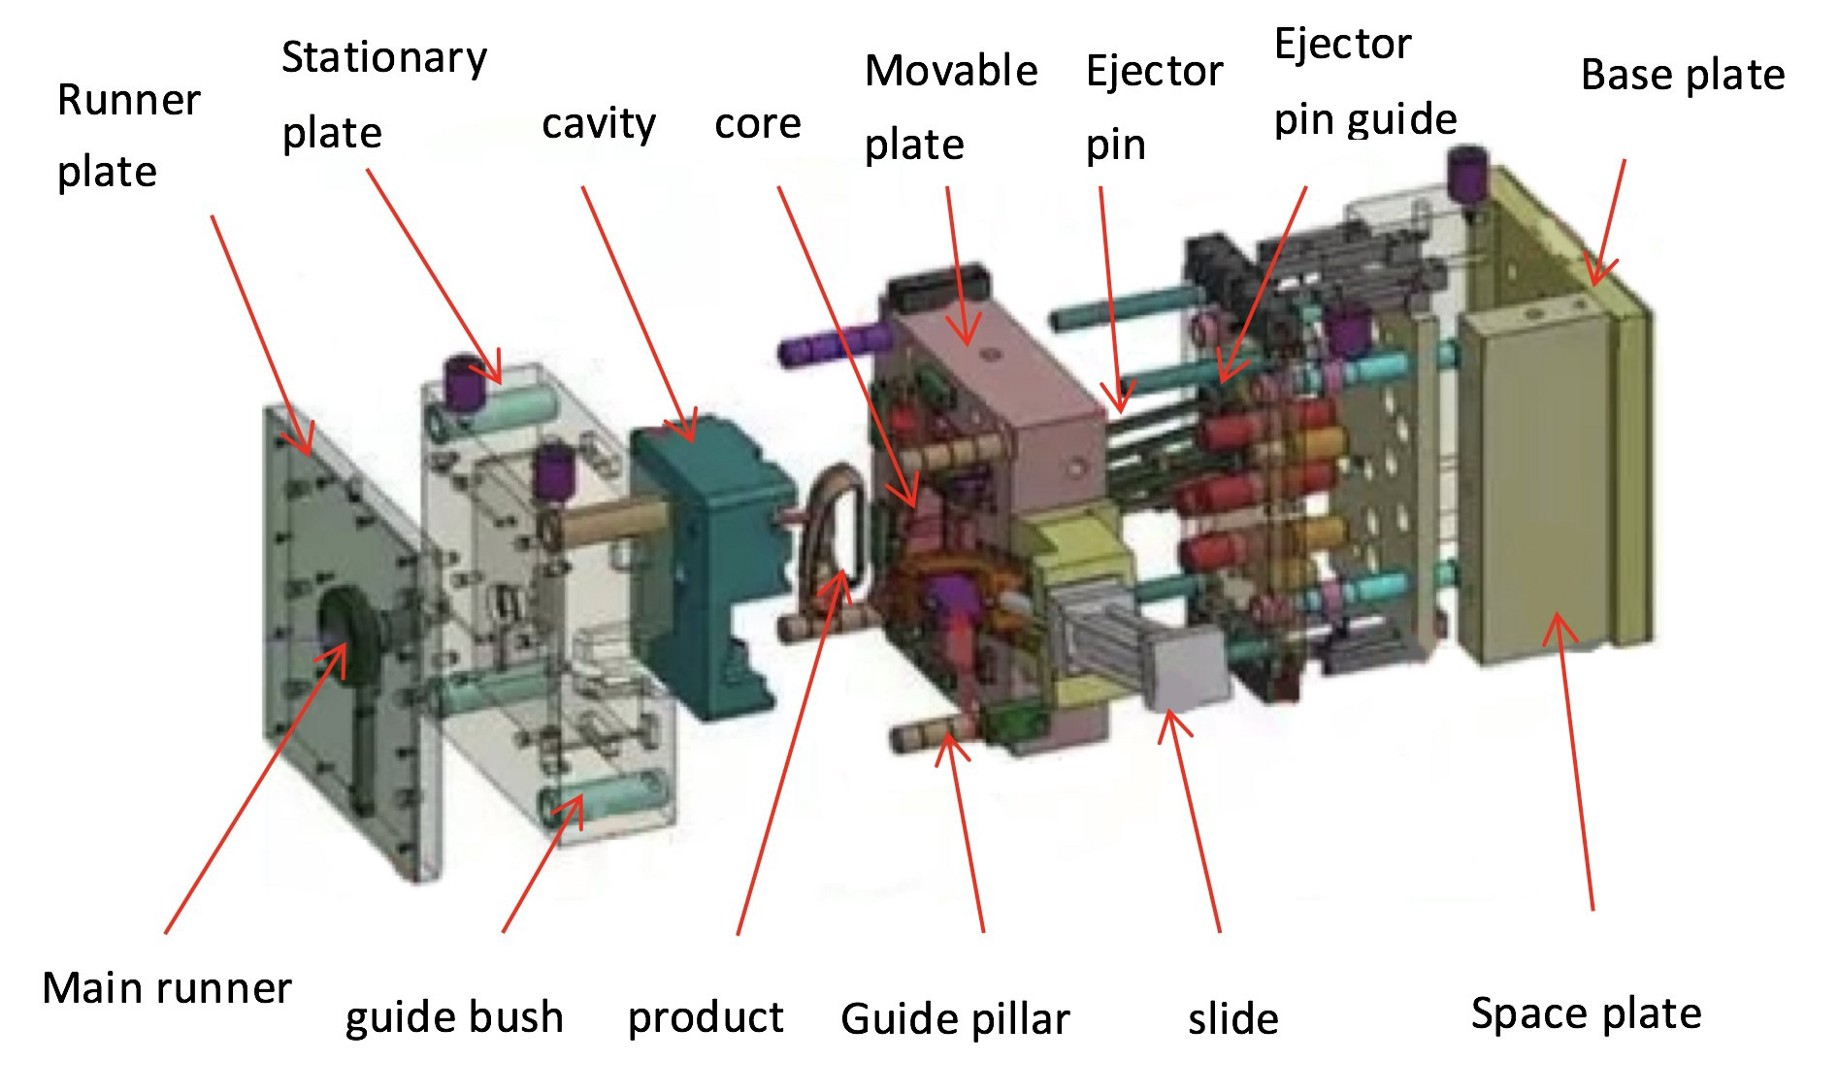 in injection molding, movable mold and fixed mold close constitute a casting  system and cavity, and when mold is opened, movable mold and fixed mold are